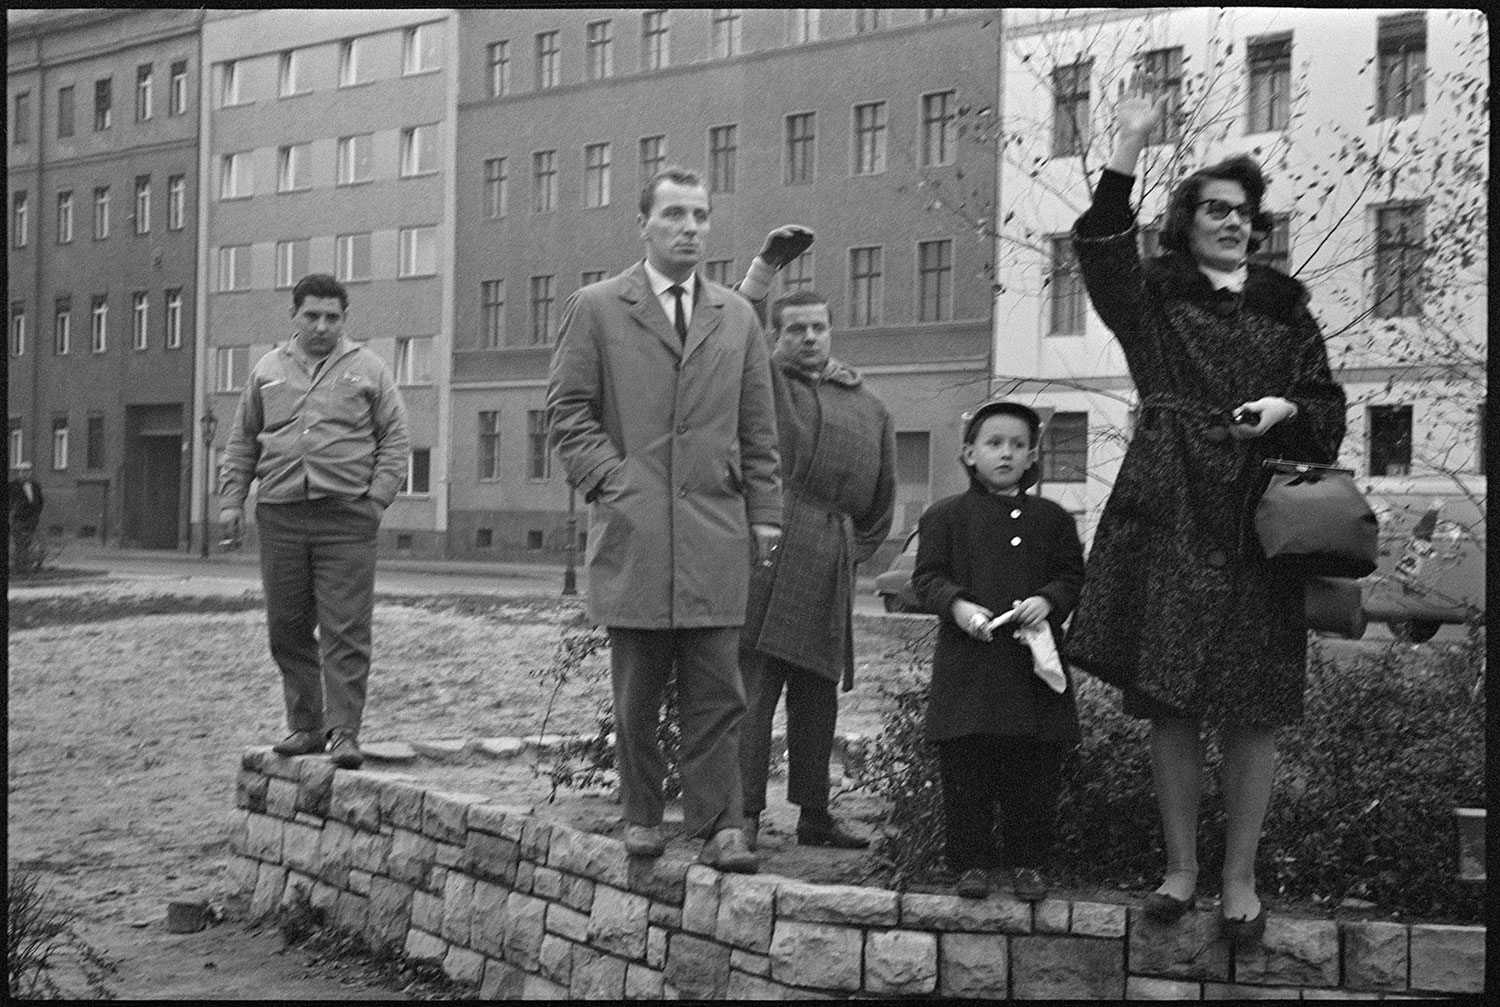 Looking into East Berlin, family members from the west wave to one another near the French sector of East Berlin, November 1961